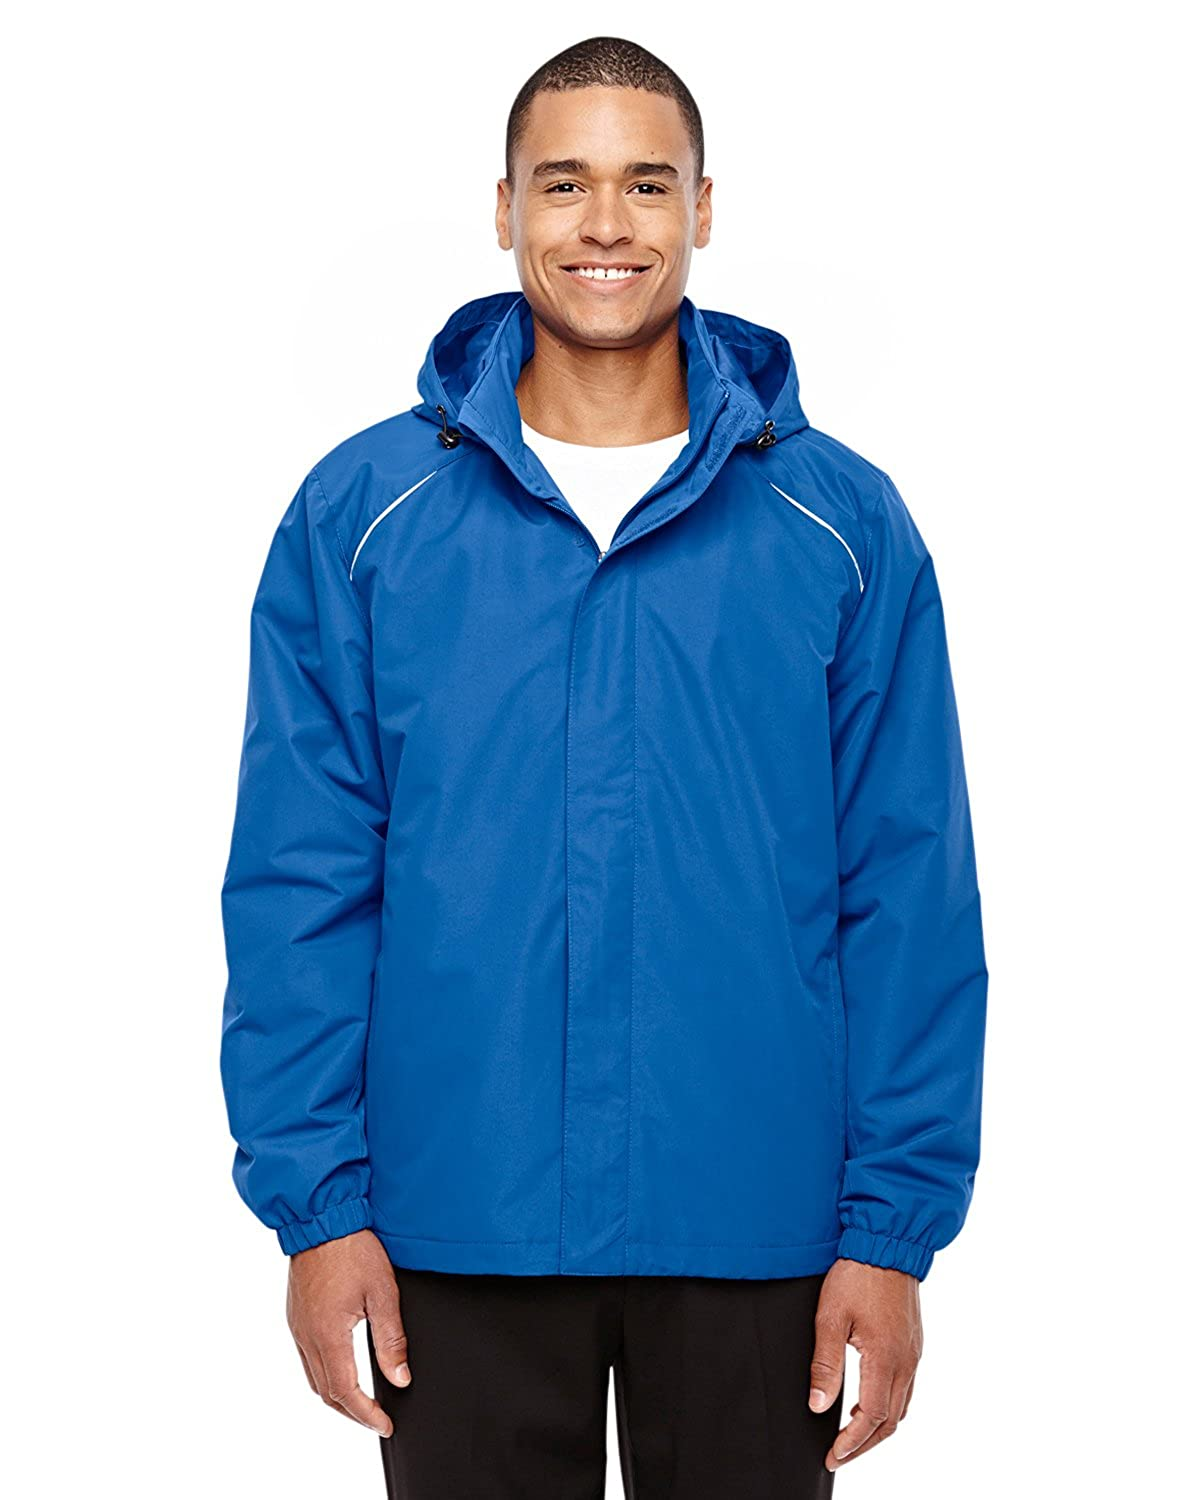 Ash City - Core 365 mens Profile Fleece-Lined All-Season Jacket (88224)